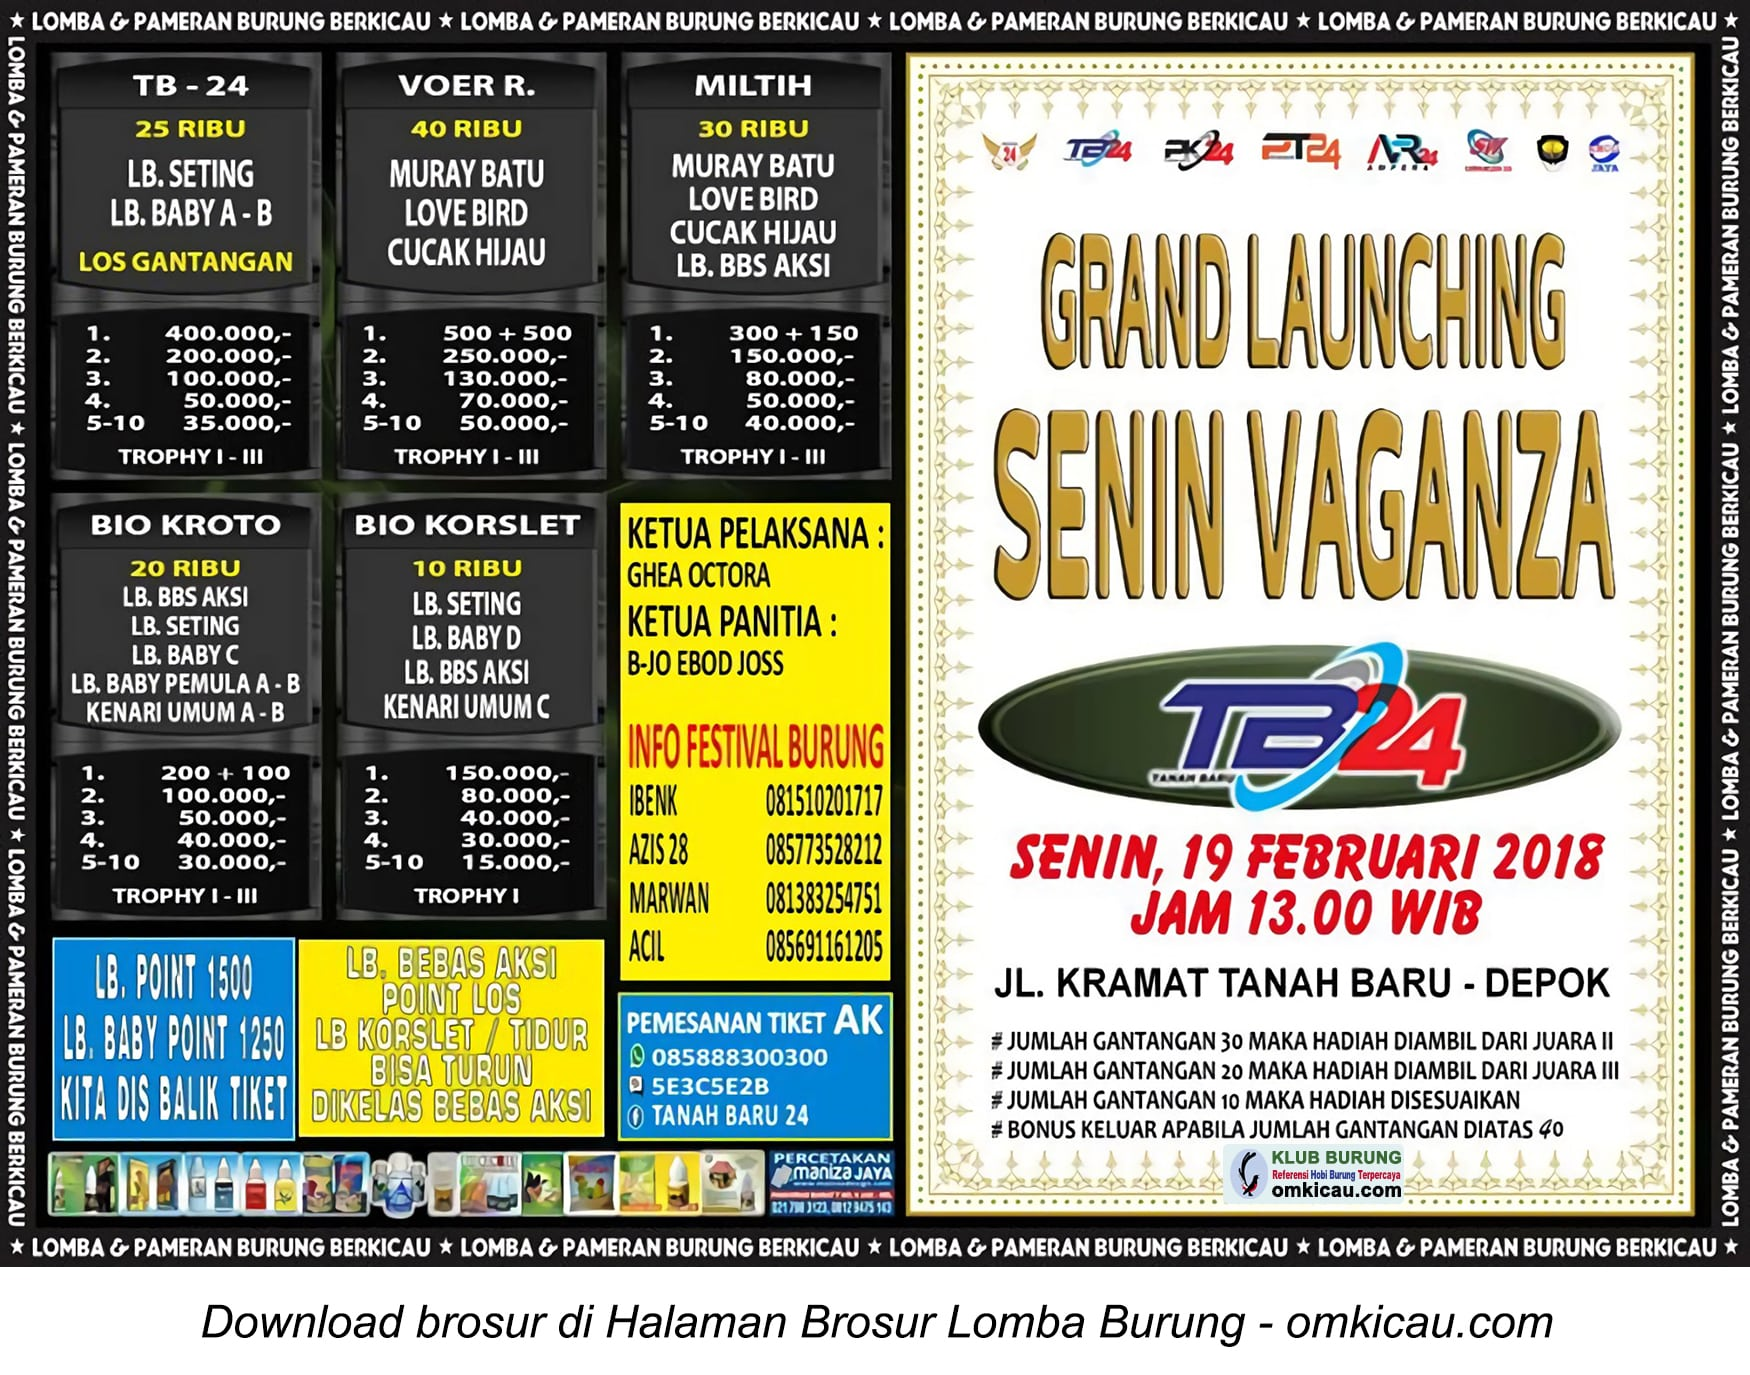 Grand Launching Senin Vaganza